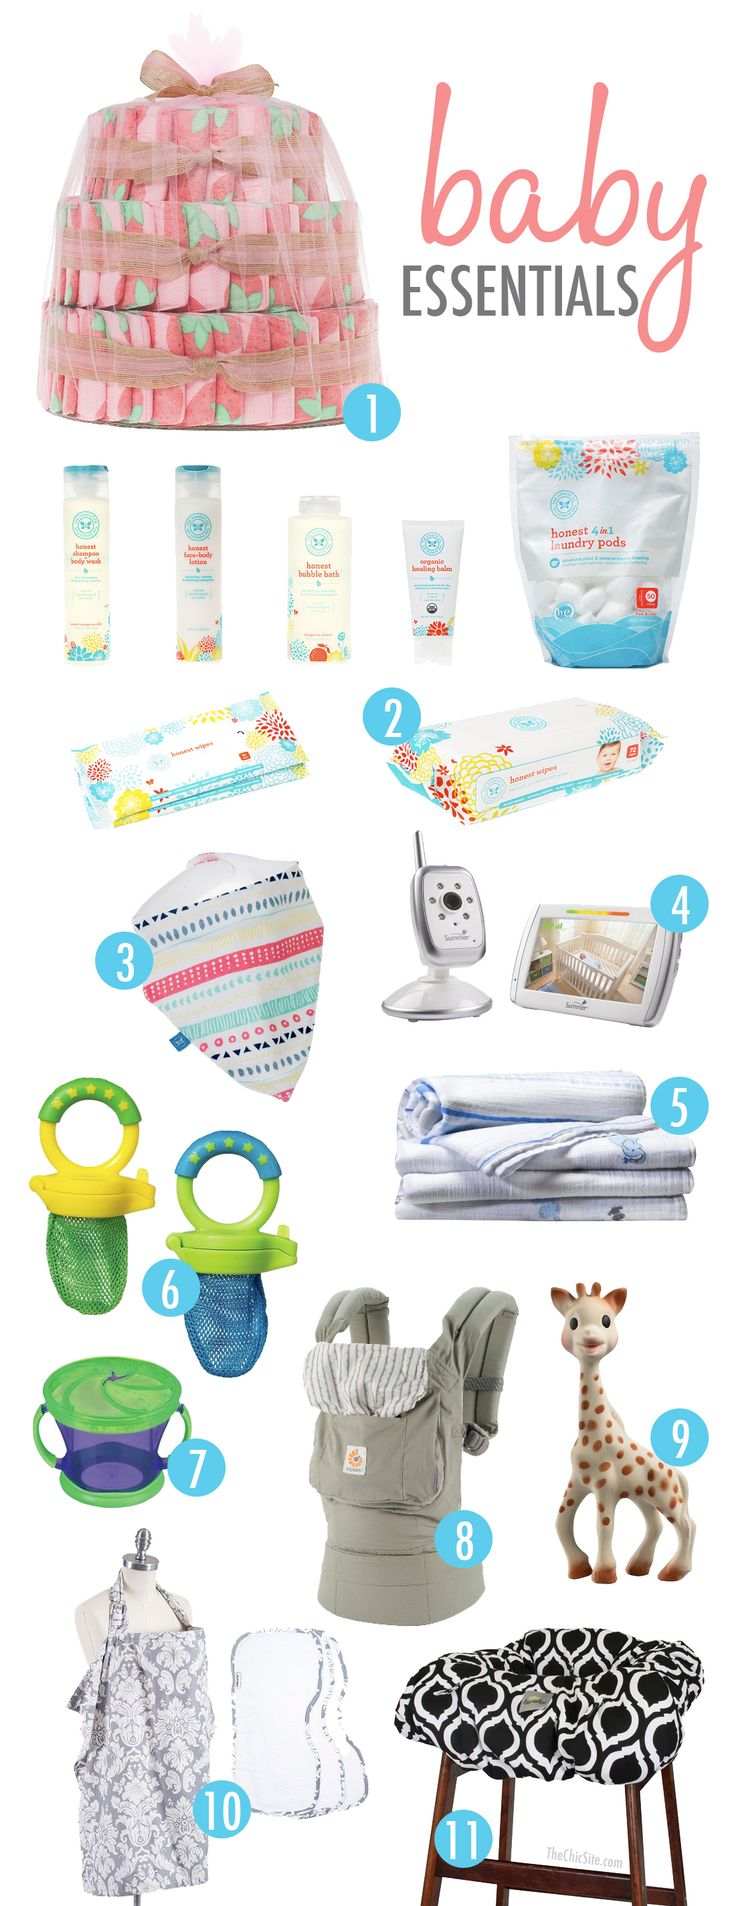 baby shower on pinterest infused water recipes baby essentials and